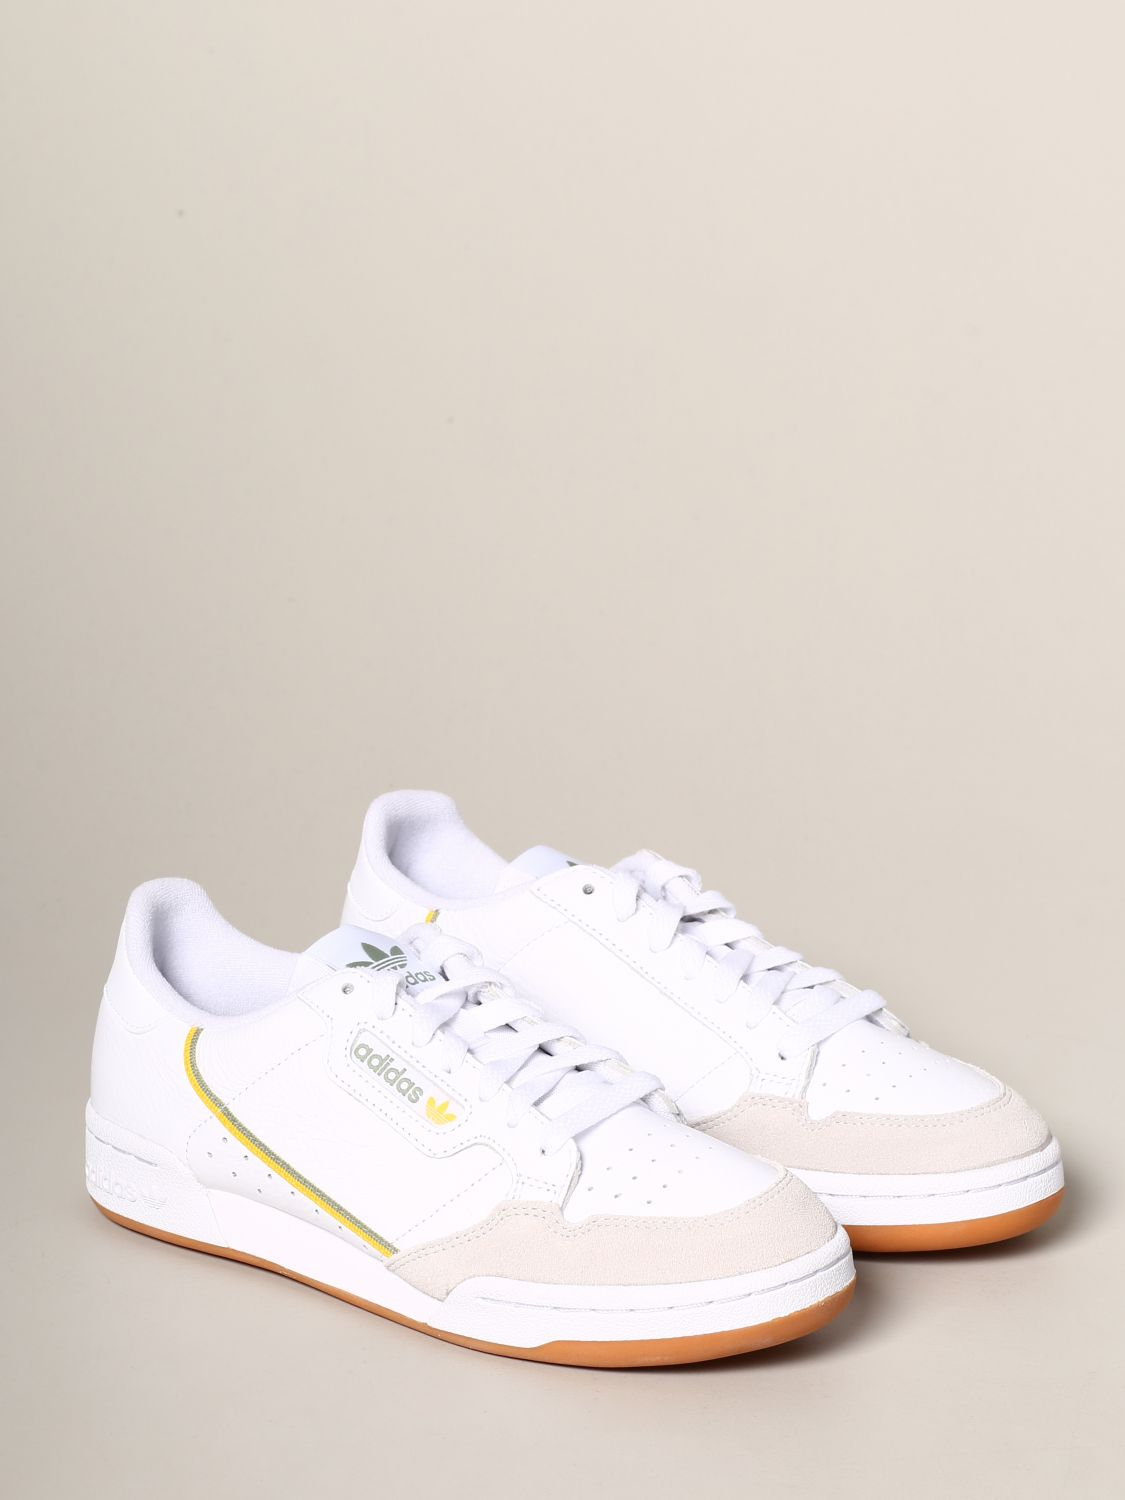 Sneakers Adidas Originals: Adidas Originals Continental 80 sneakers in leather and suede white 2